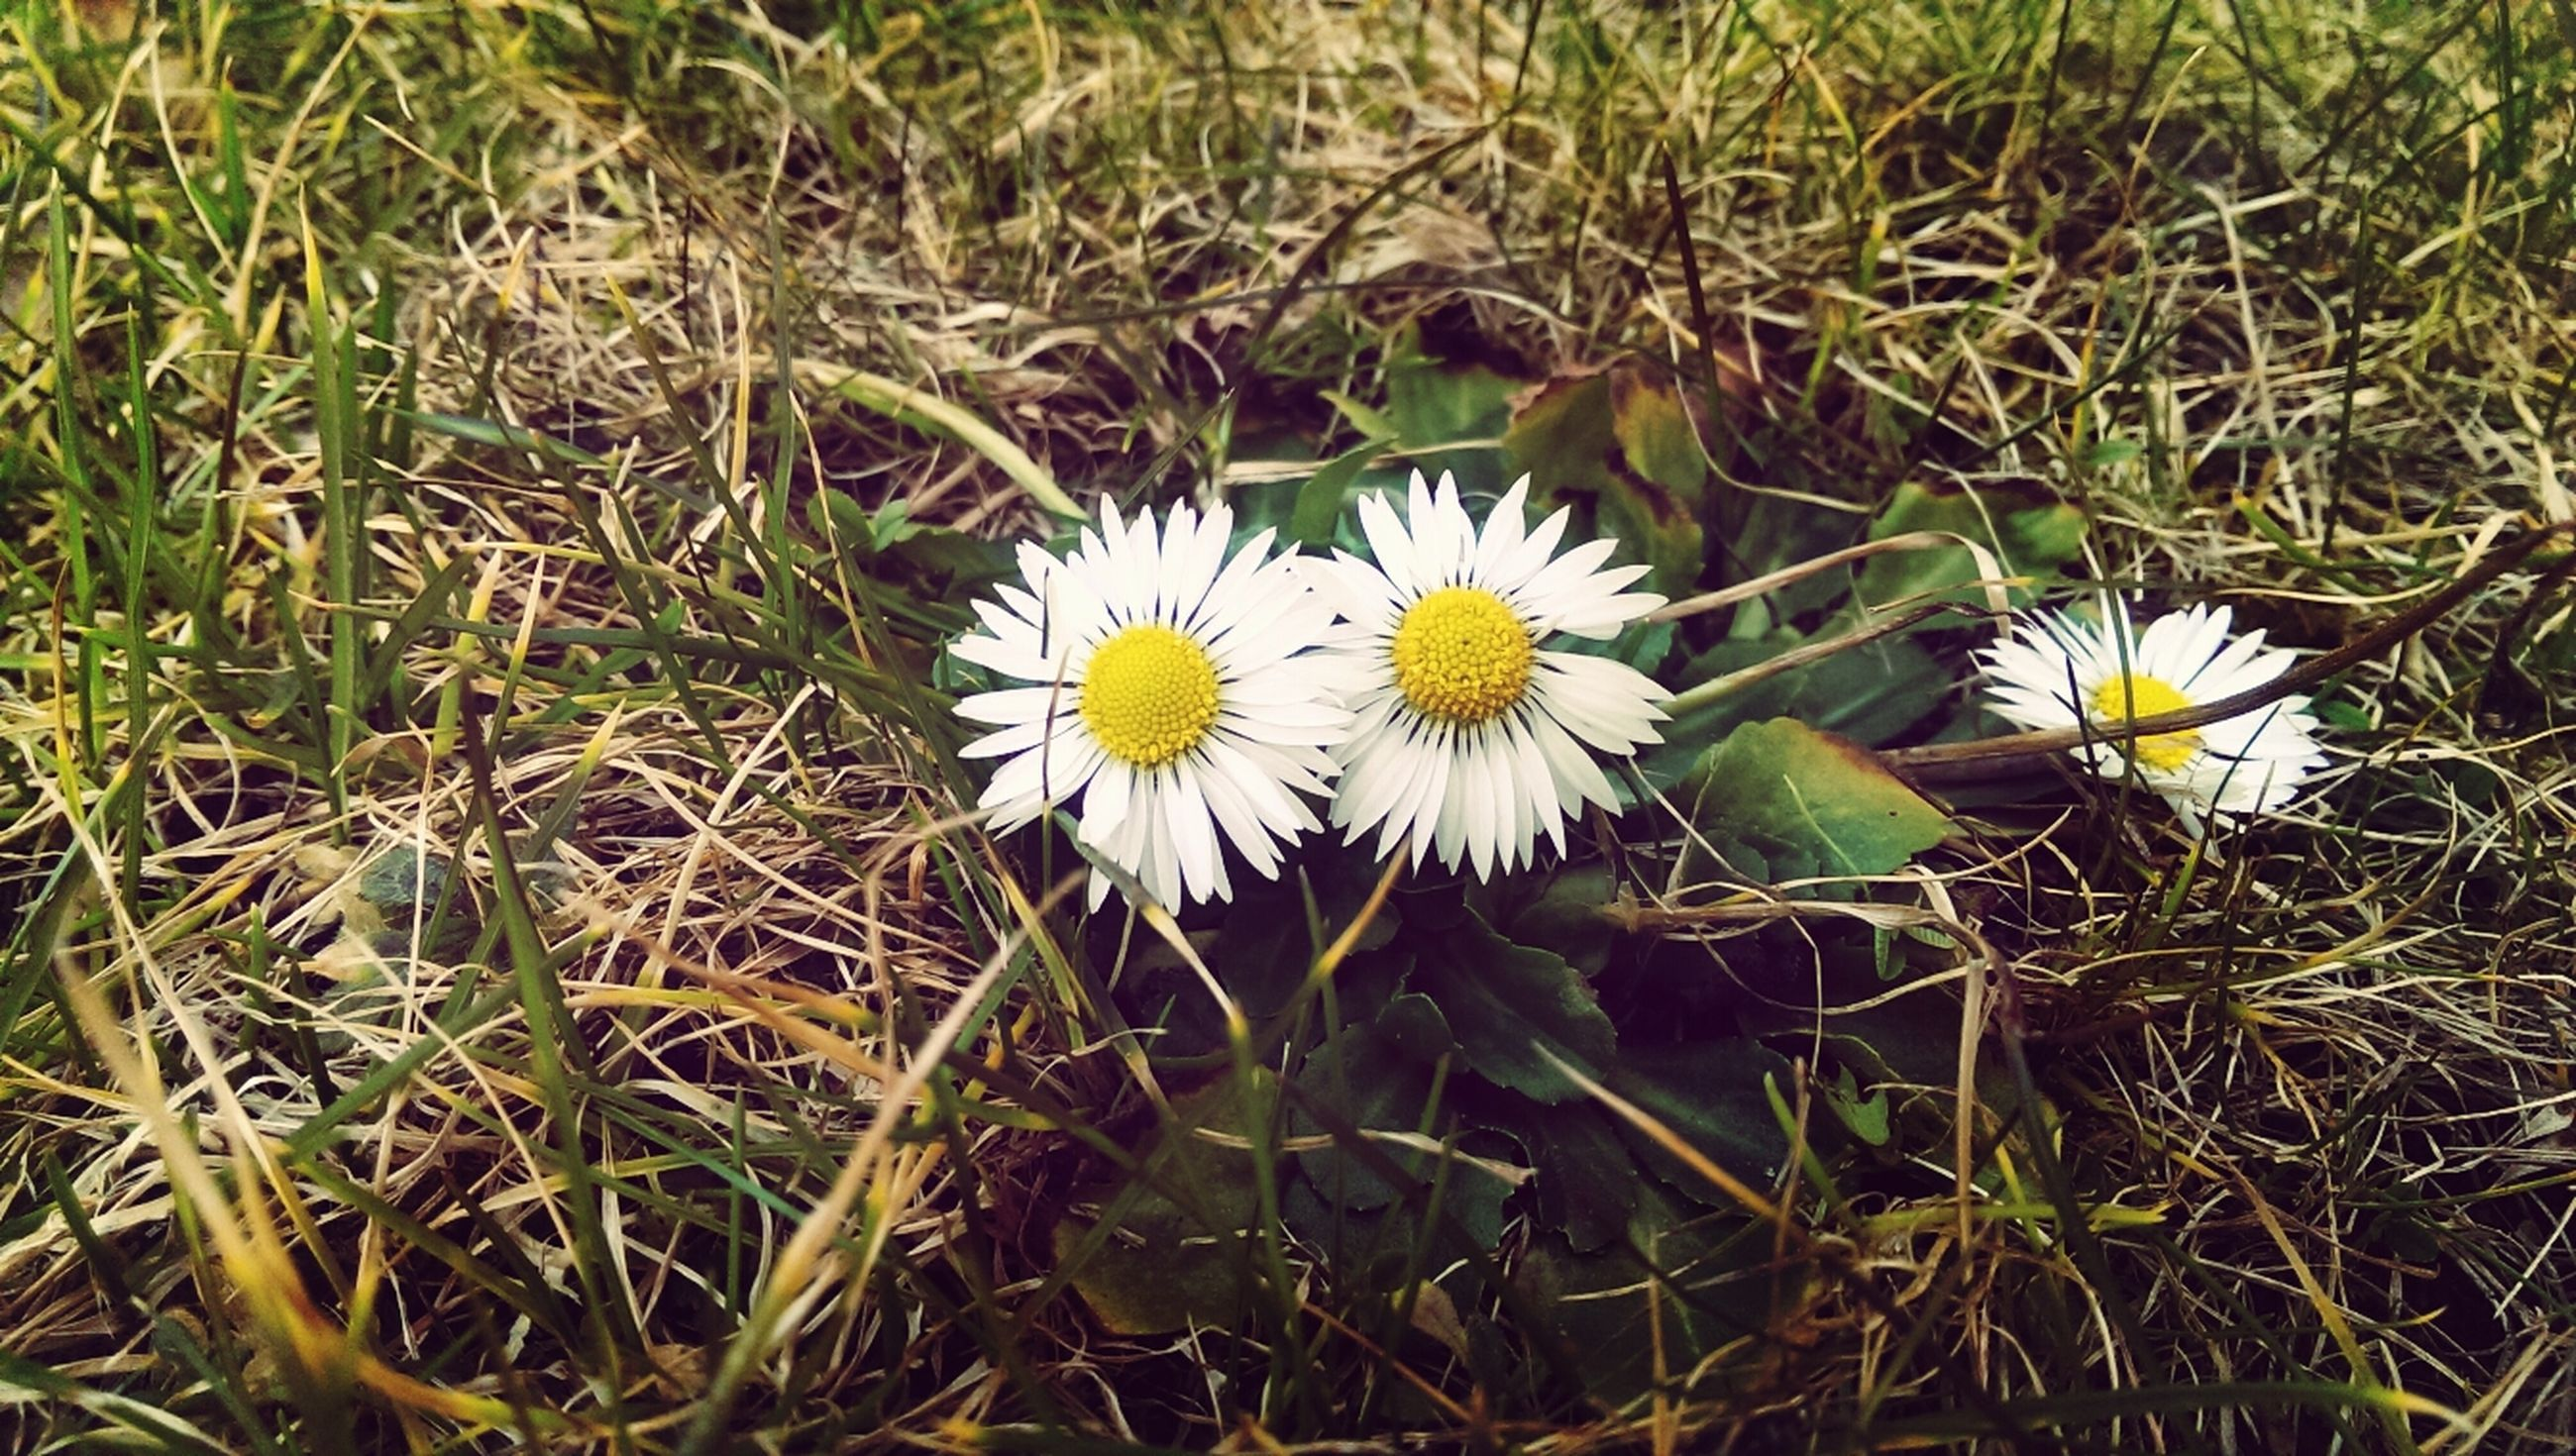 flower, white color, fragility, freshness, growth, grass, petal, daisy, flower head, field, beauty in nature, nature, plant, blooming, high angle view, single flower, white, green color, close-up, pollen